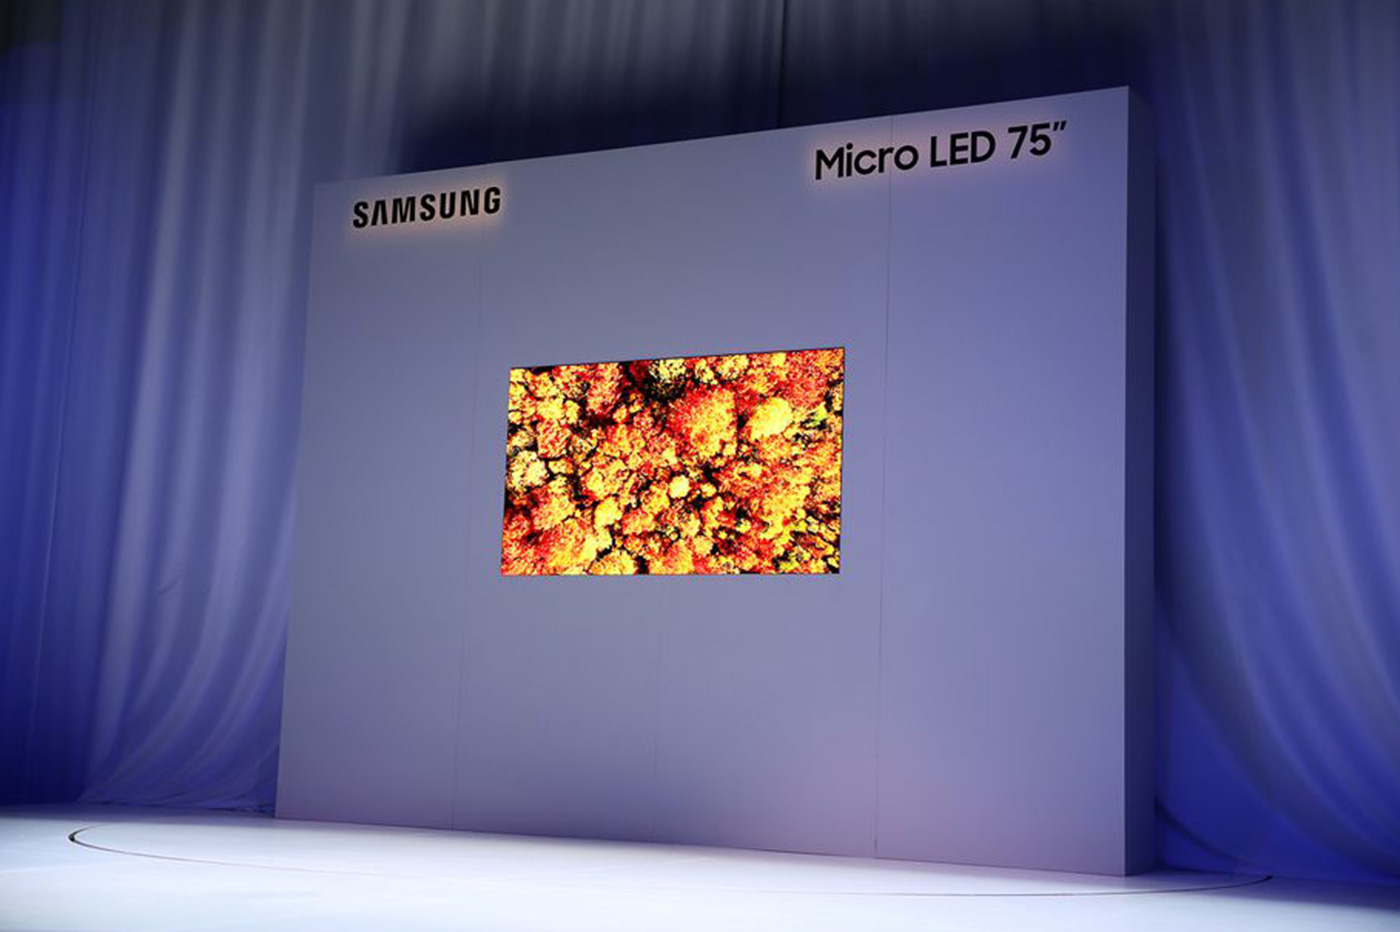 Samsung The Wall Micro LED